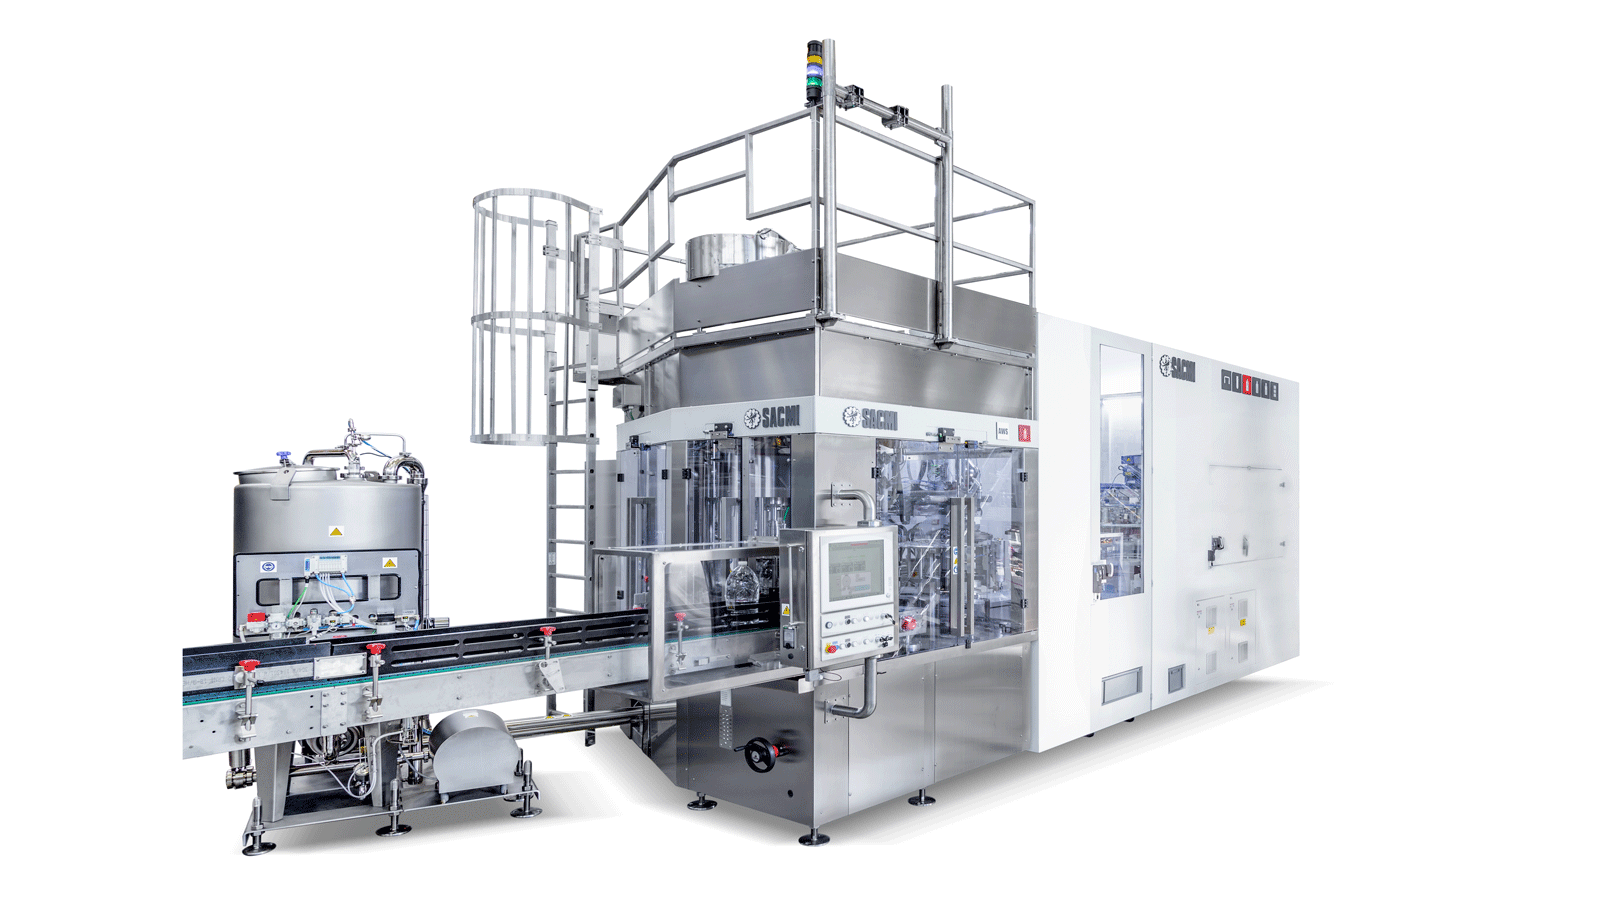 With the XL range, SACMI completes its array of PET bottle stretch-blow moulding and filling solutions